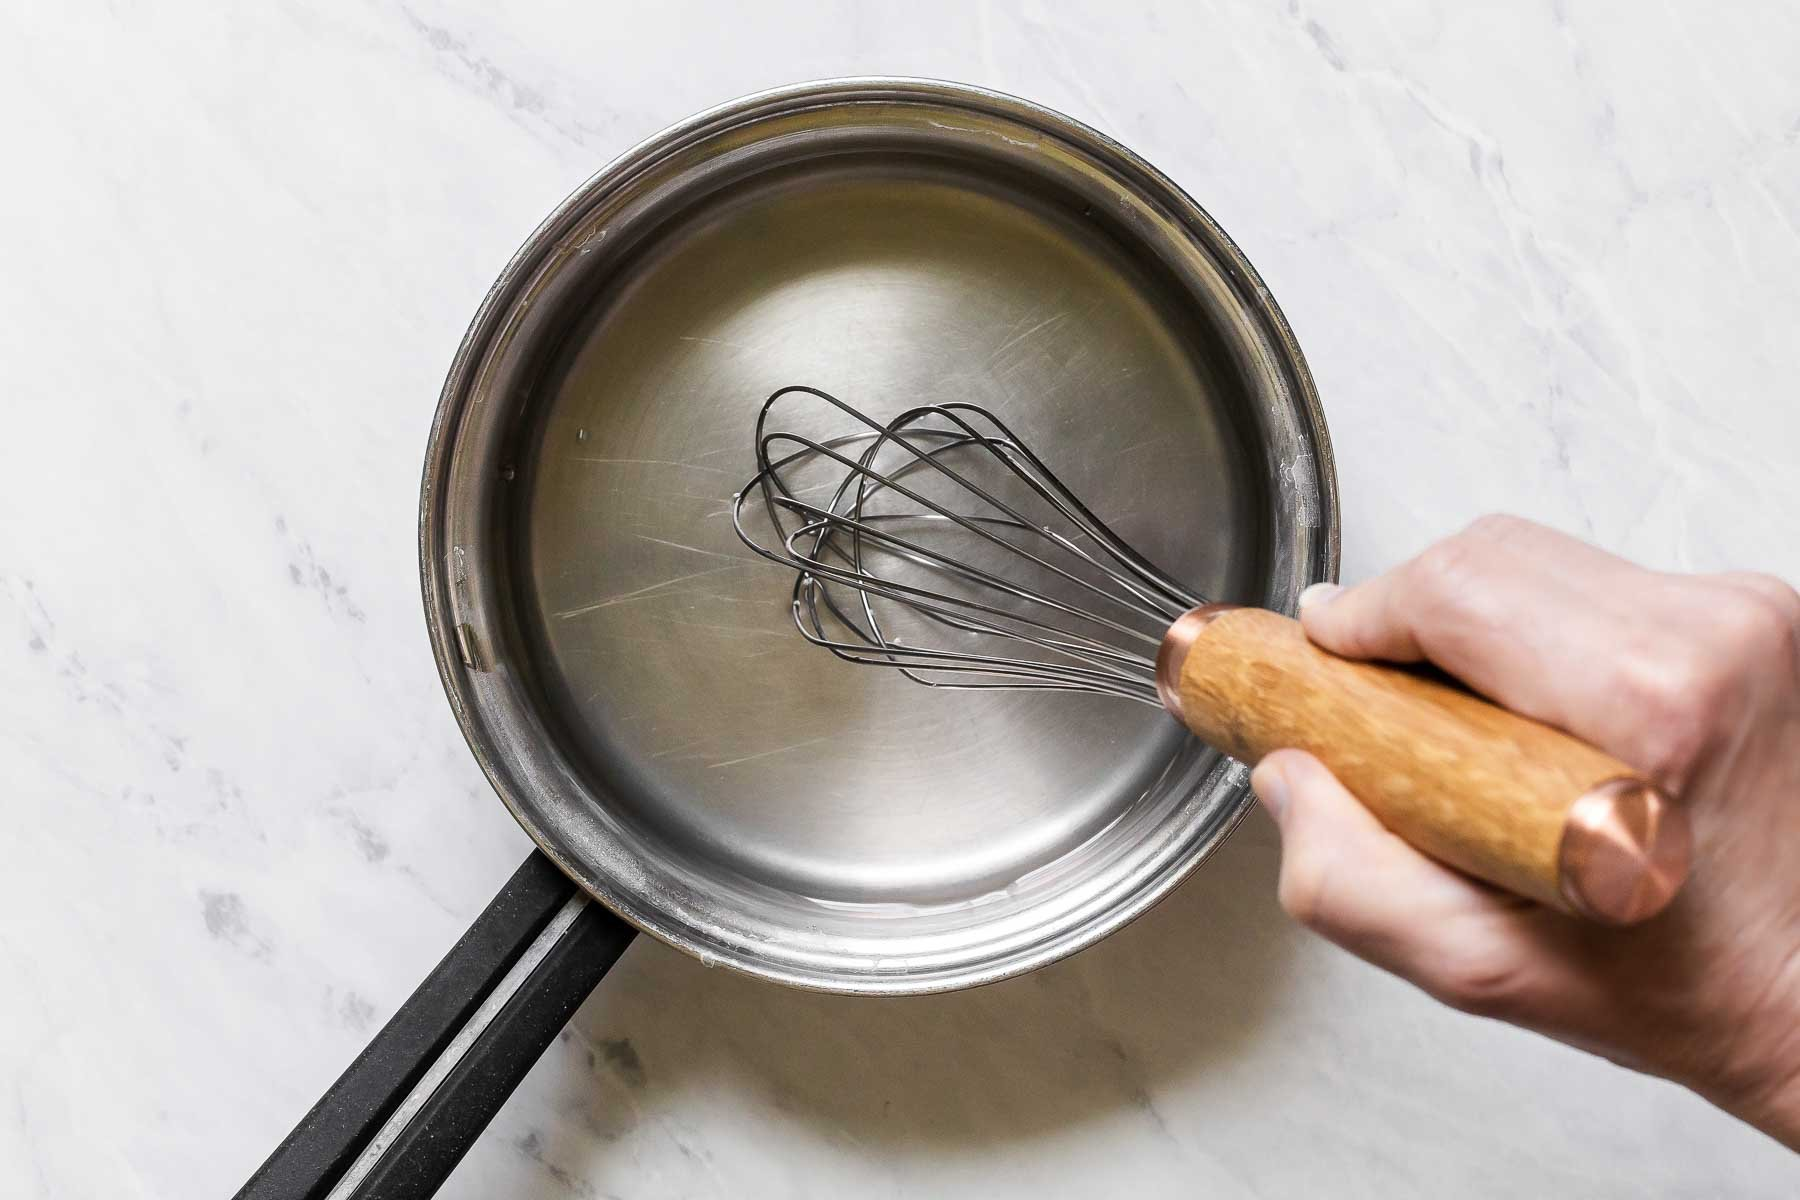 Water and vinegar boiling in pan with whisk.